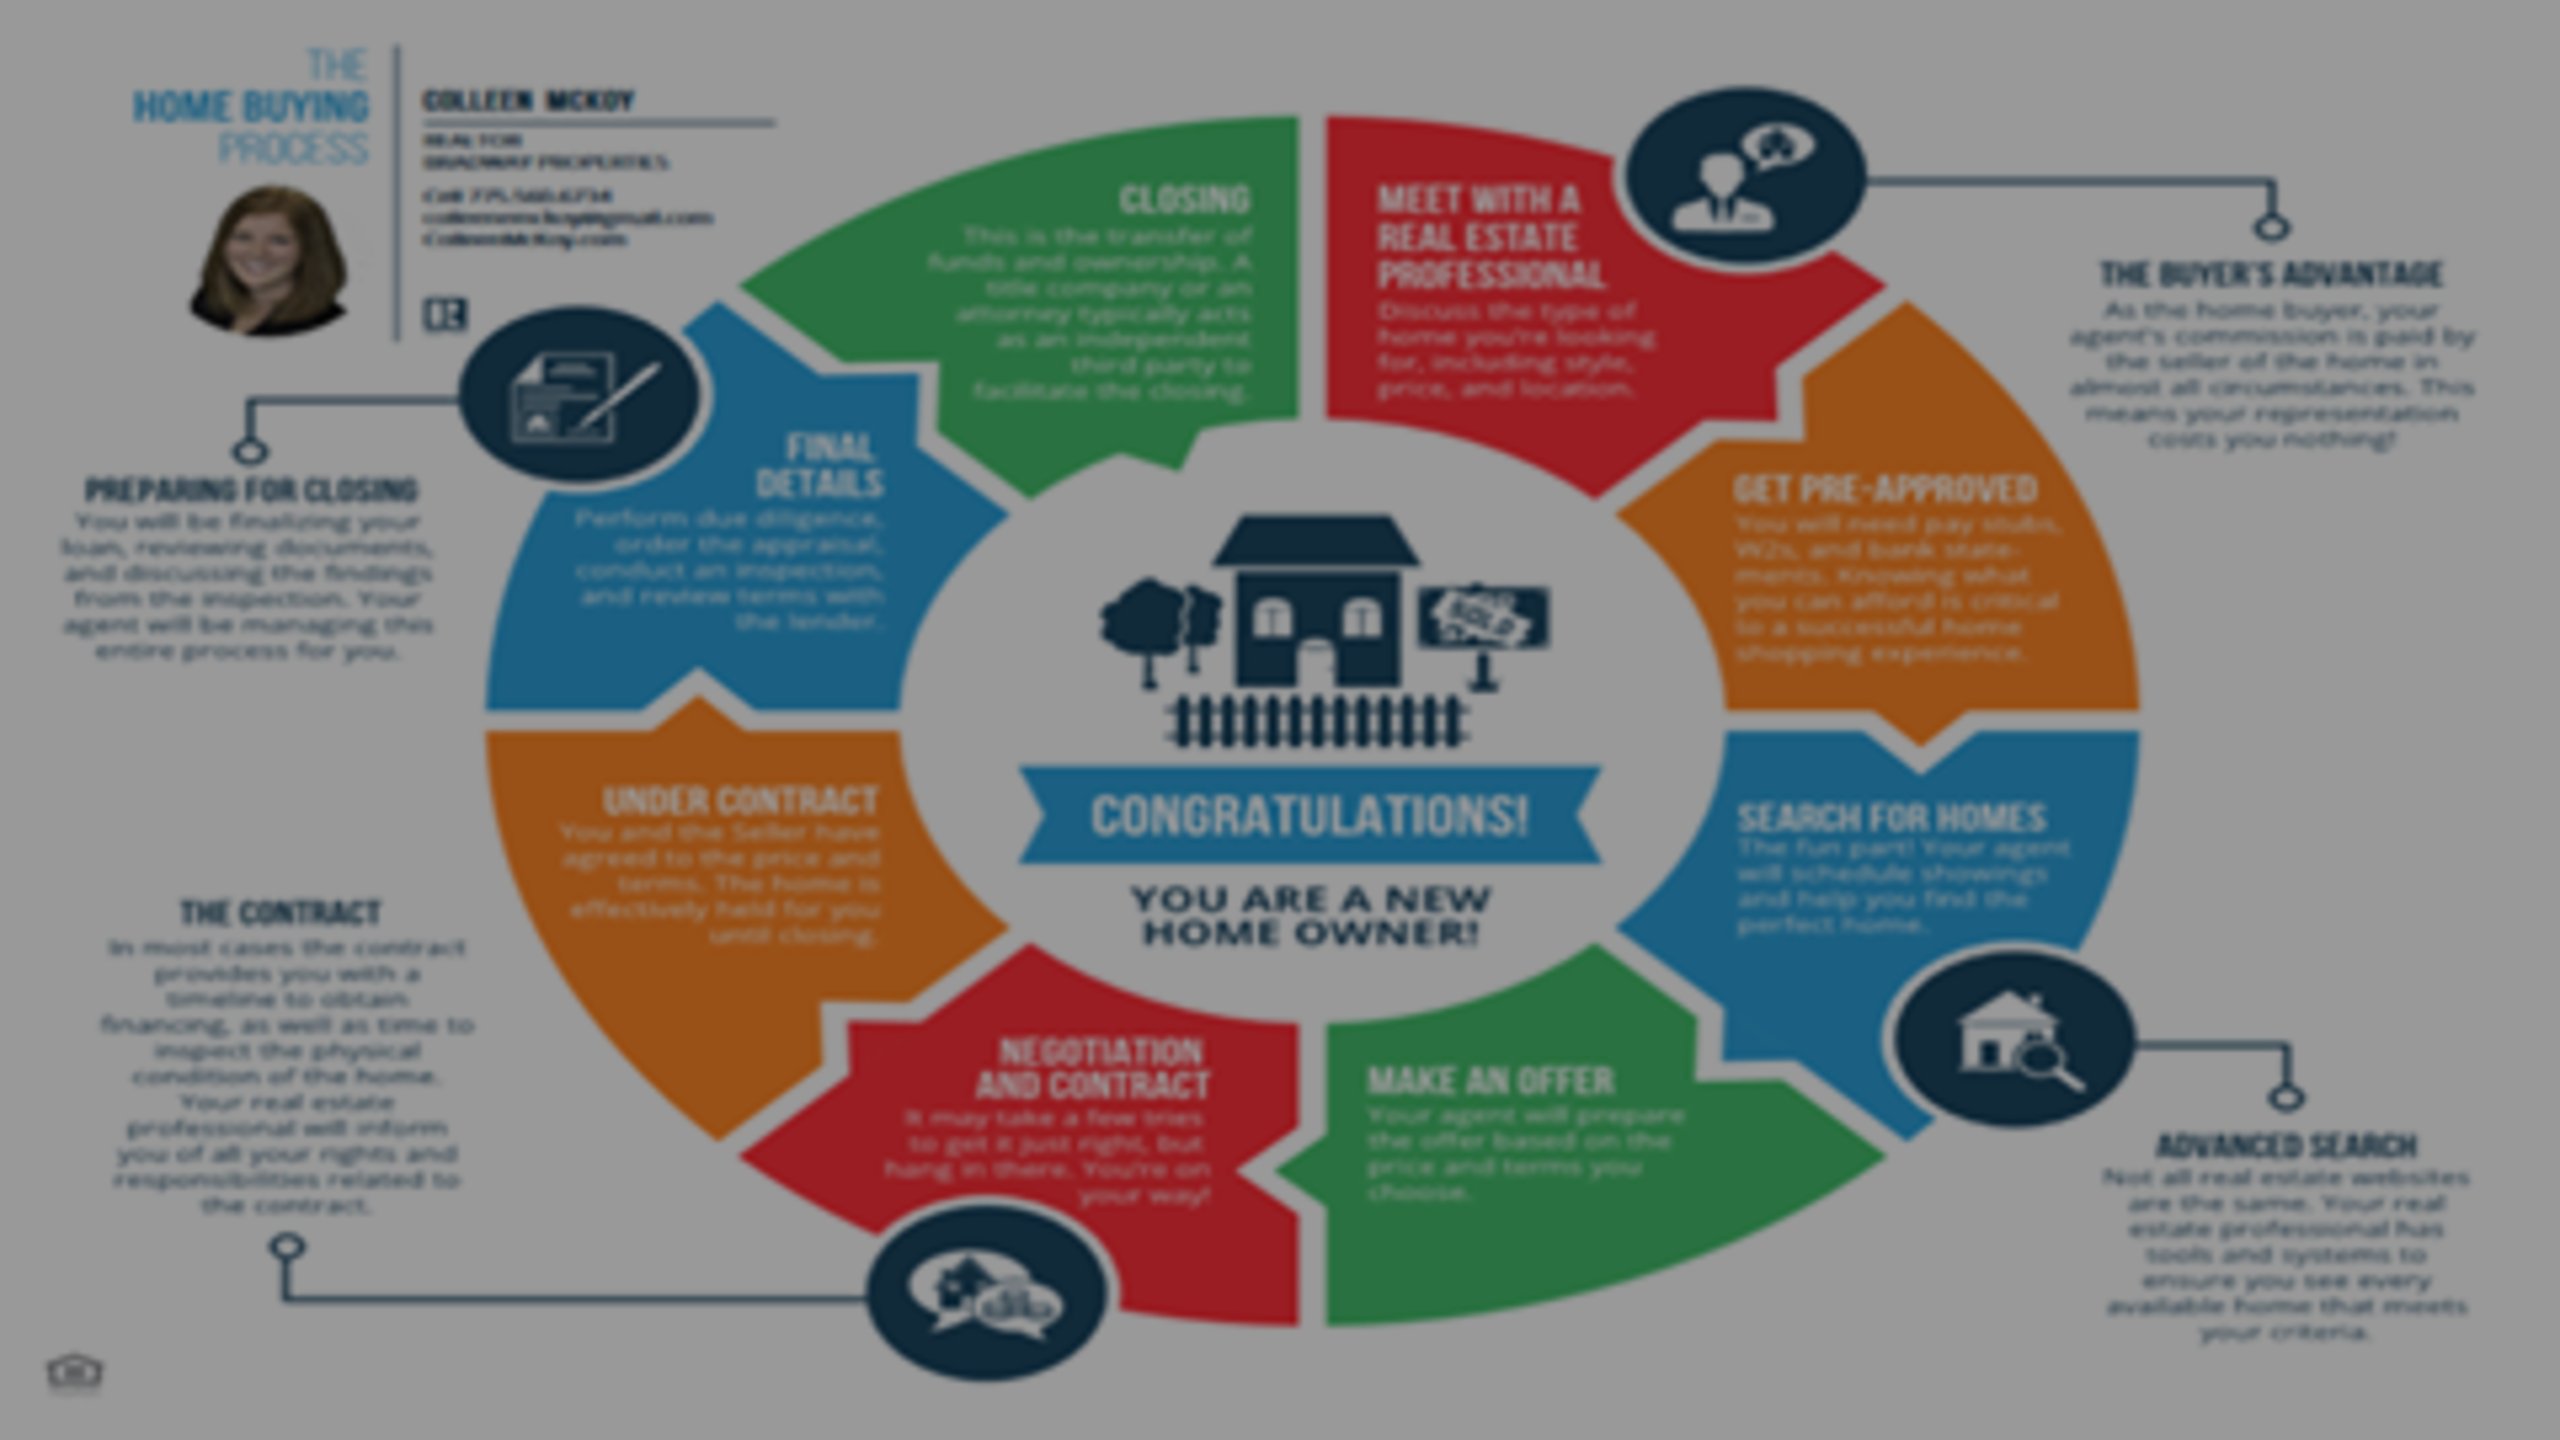 Take a look at the home buying process